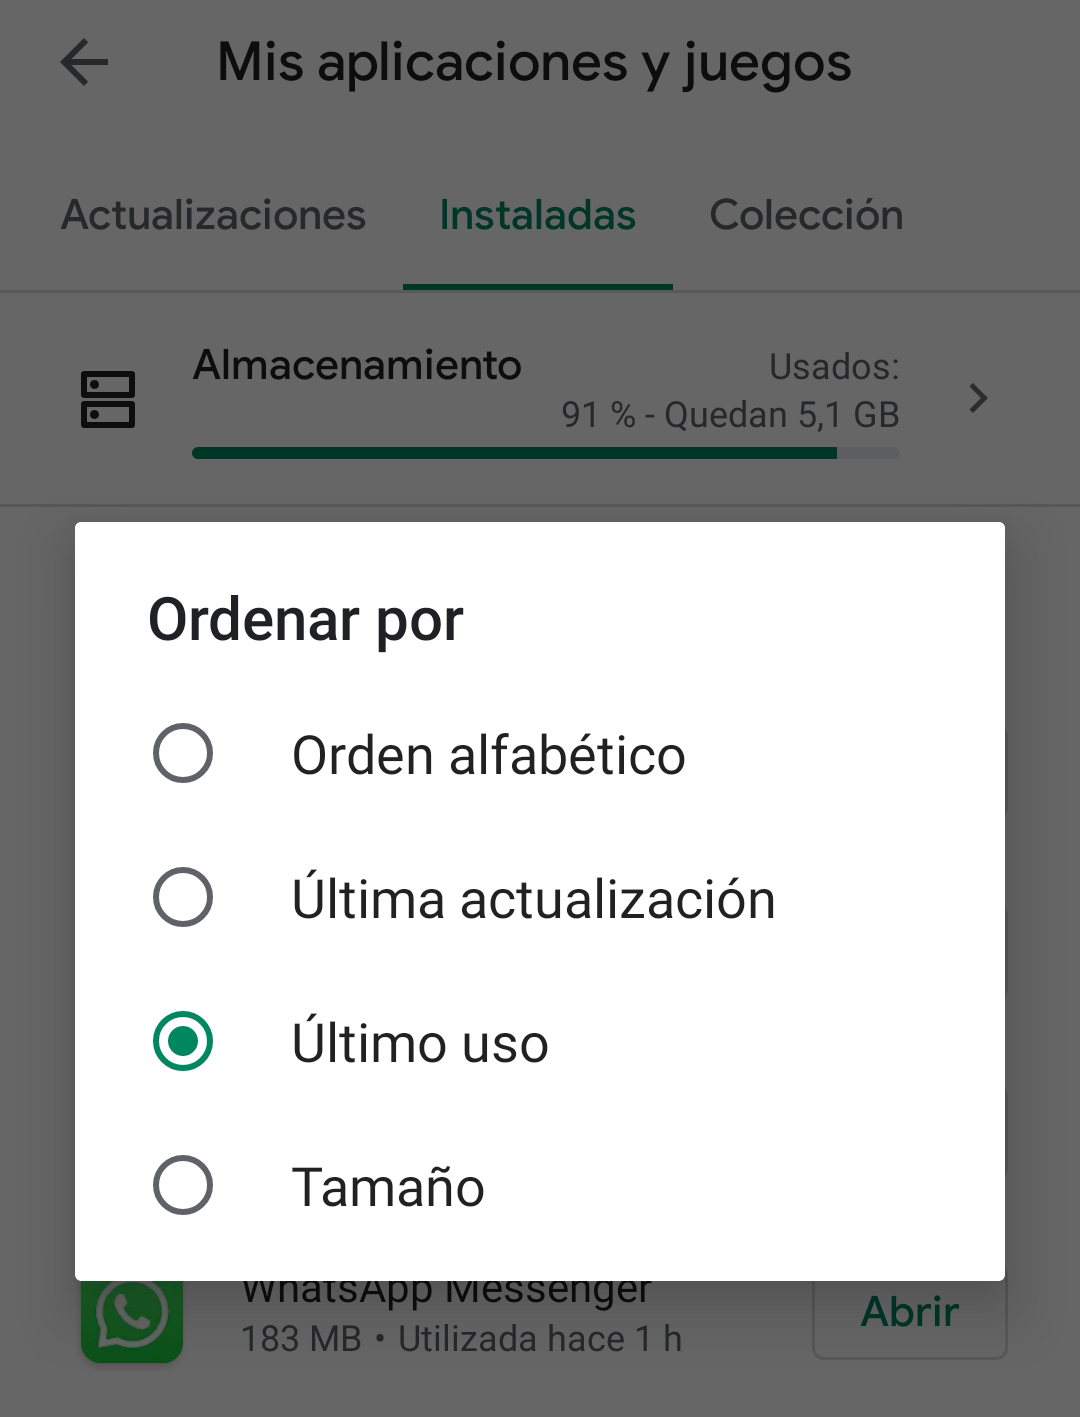 Apps ultimo uso